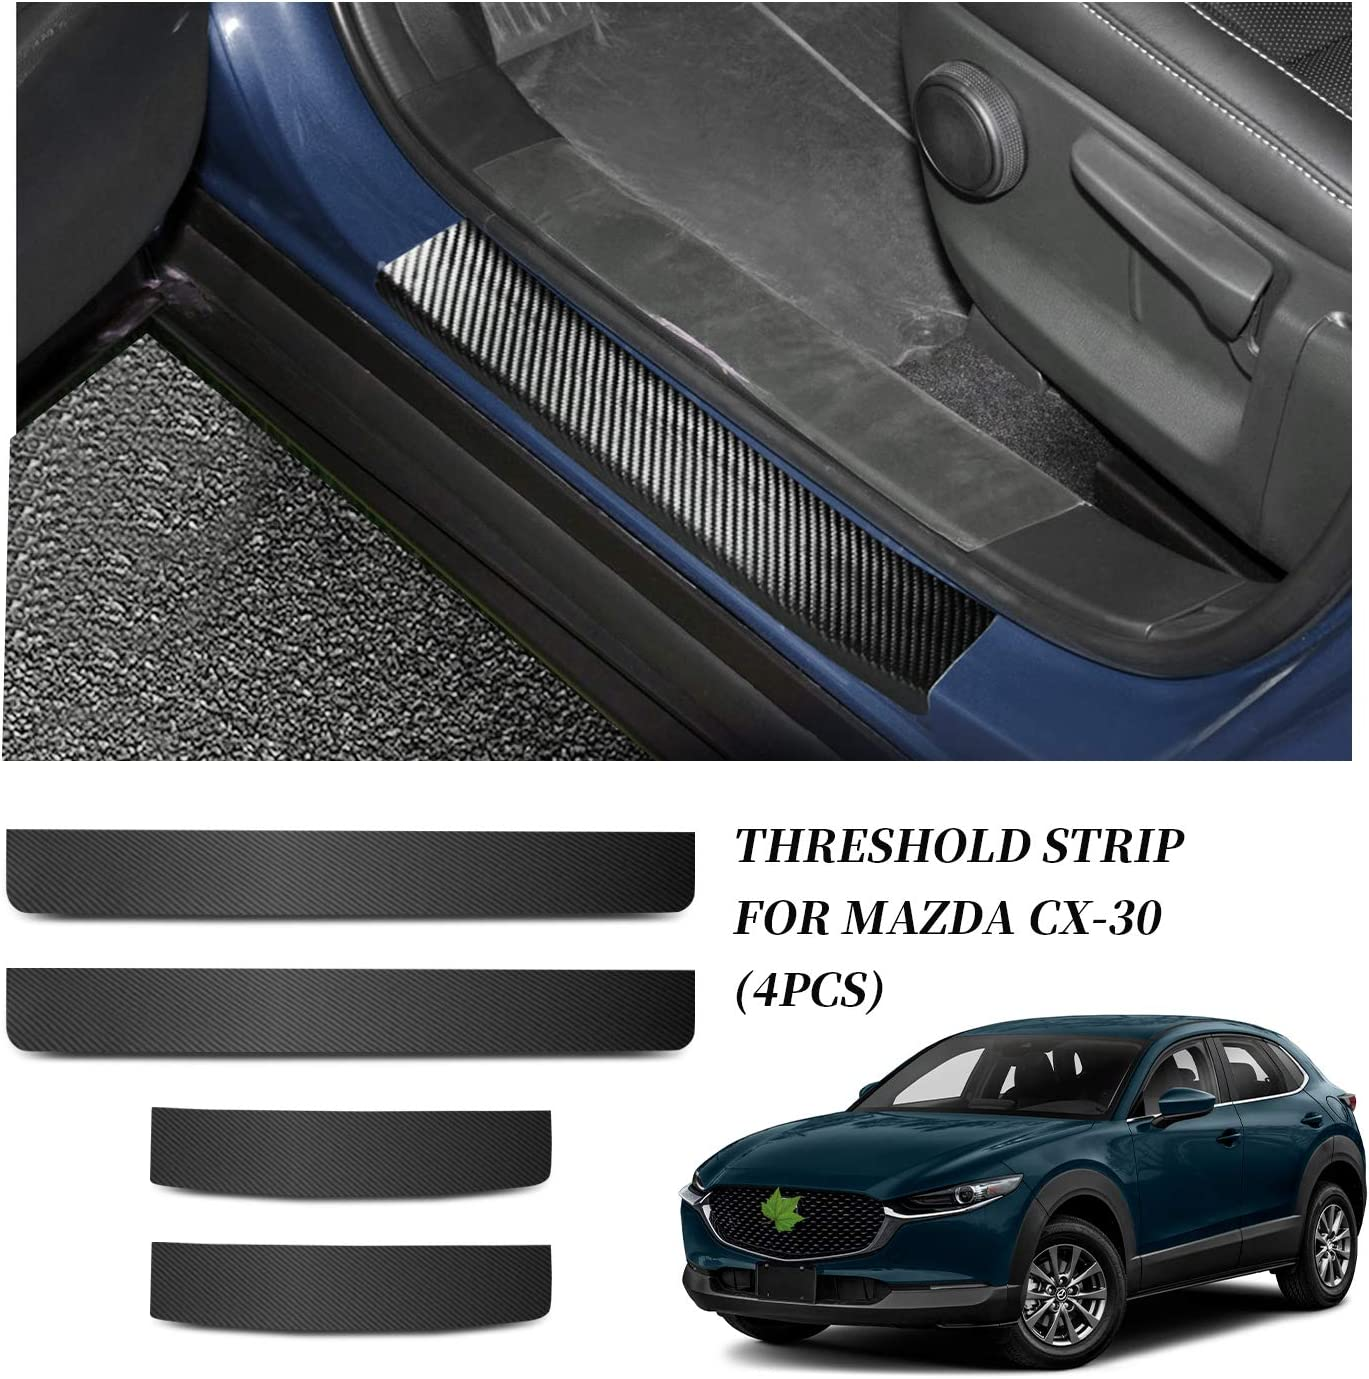 Carbon Fiber YEE PIN 4PCS Car Threshold Protection Sticker Door Sill Scuff Plate Cover Door Entry Guards Sticker Door Threshold Scratch Pad Film for Mazda CX-30 2019 2020